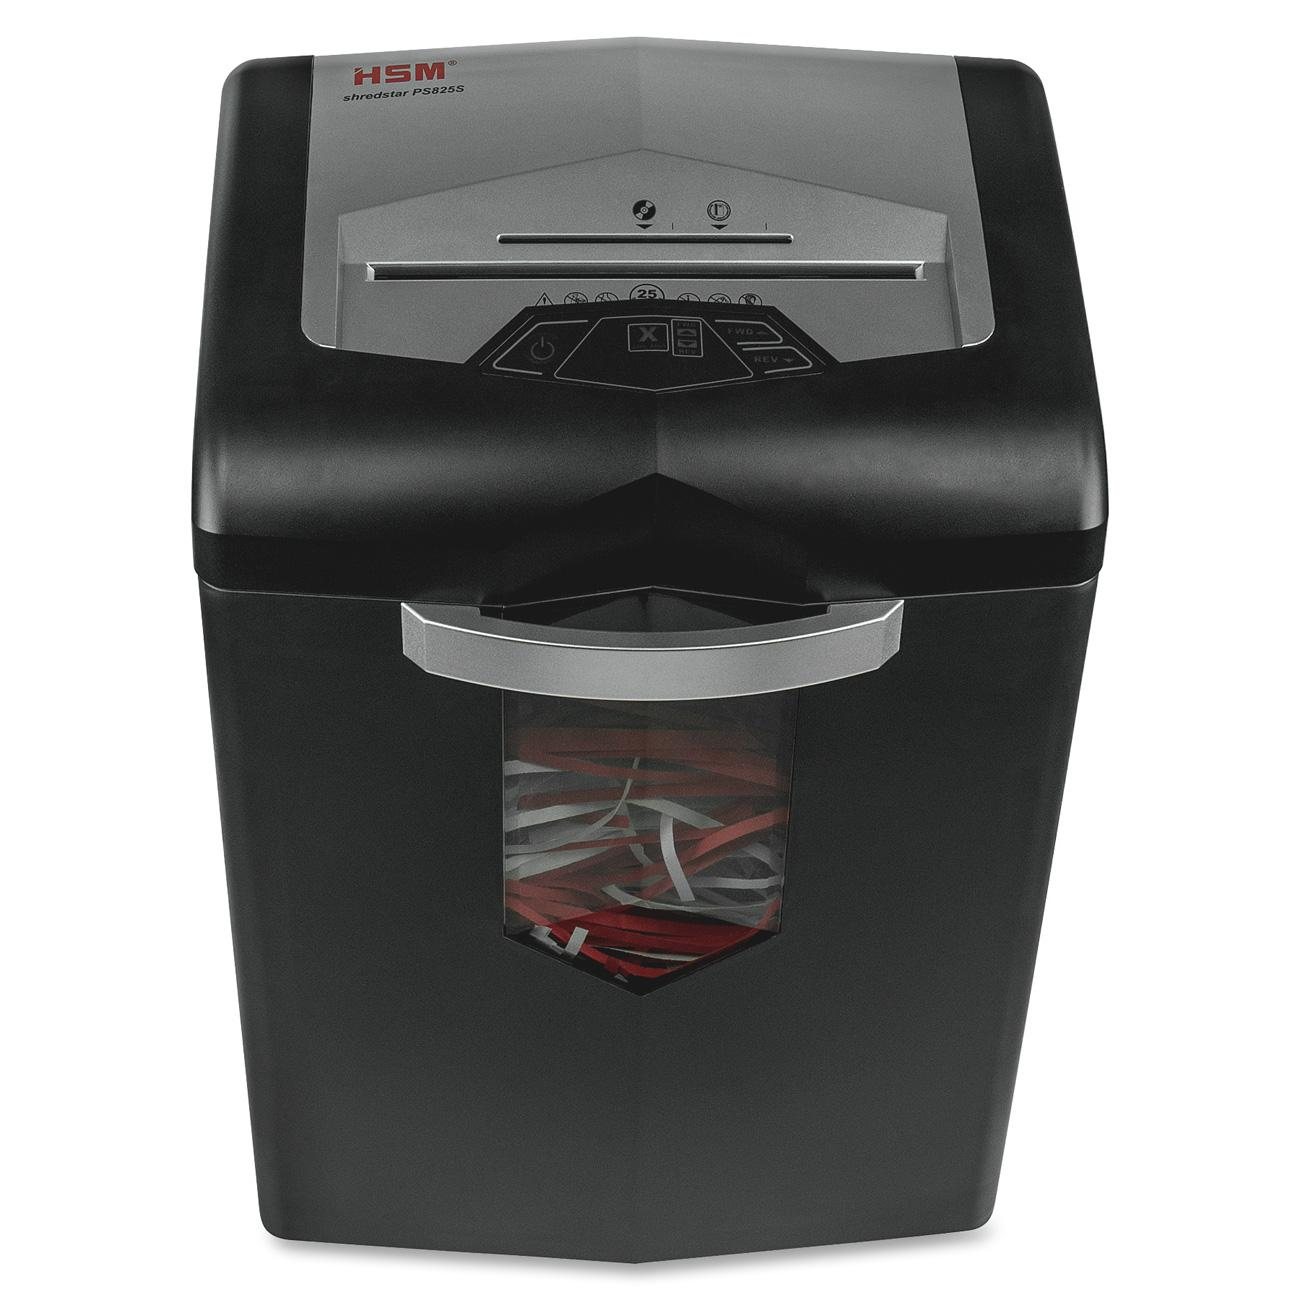 HSM shredstar PS825s Strip-Cut Shredder, Black